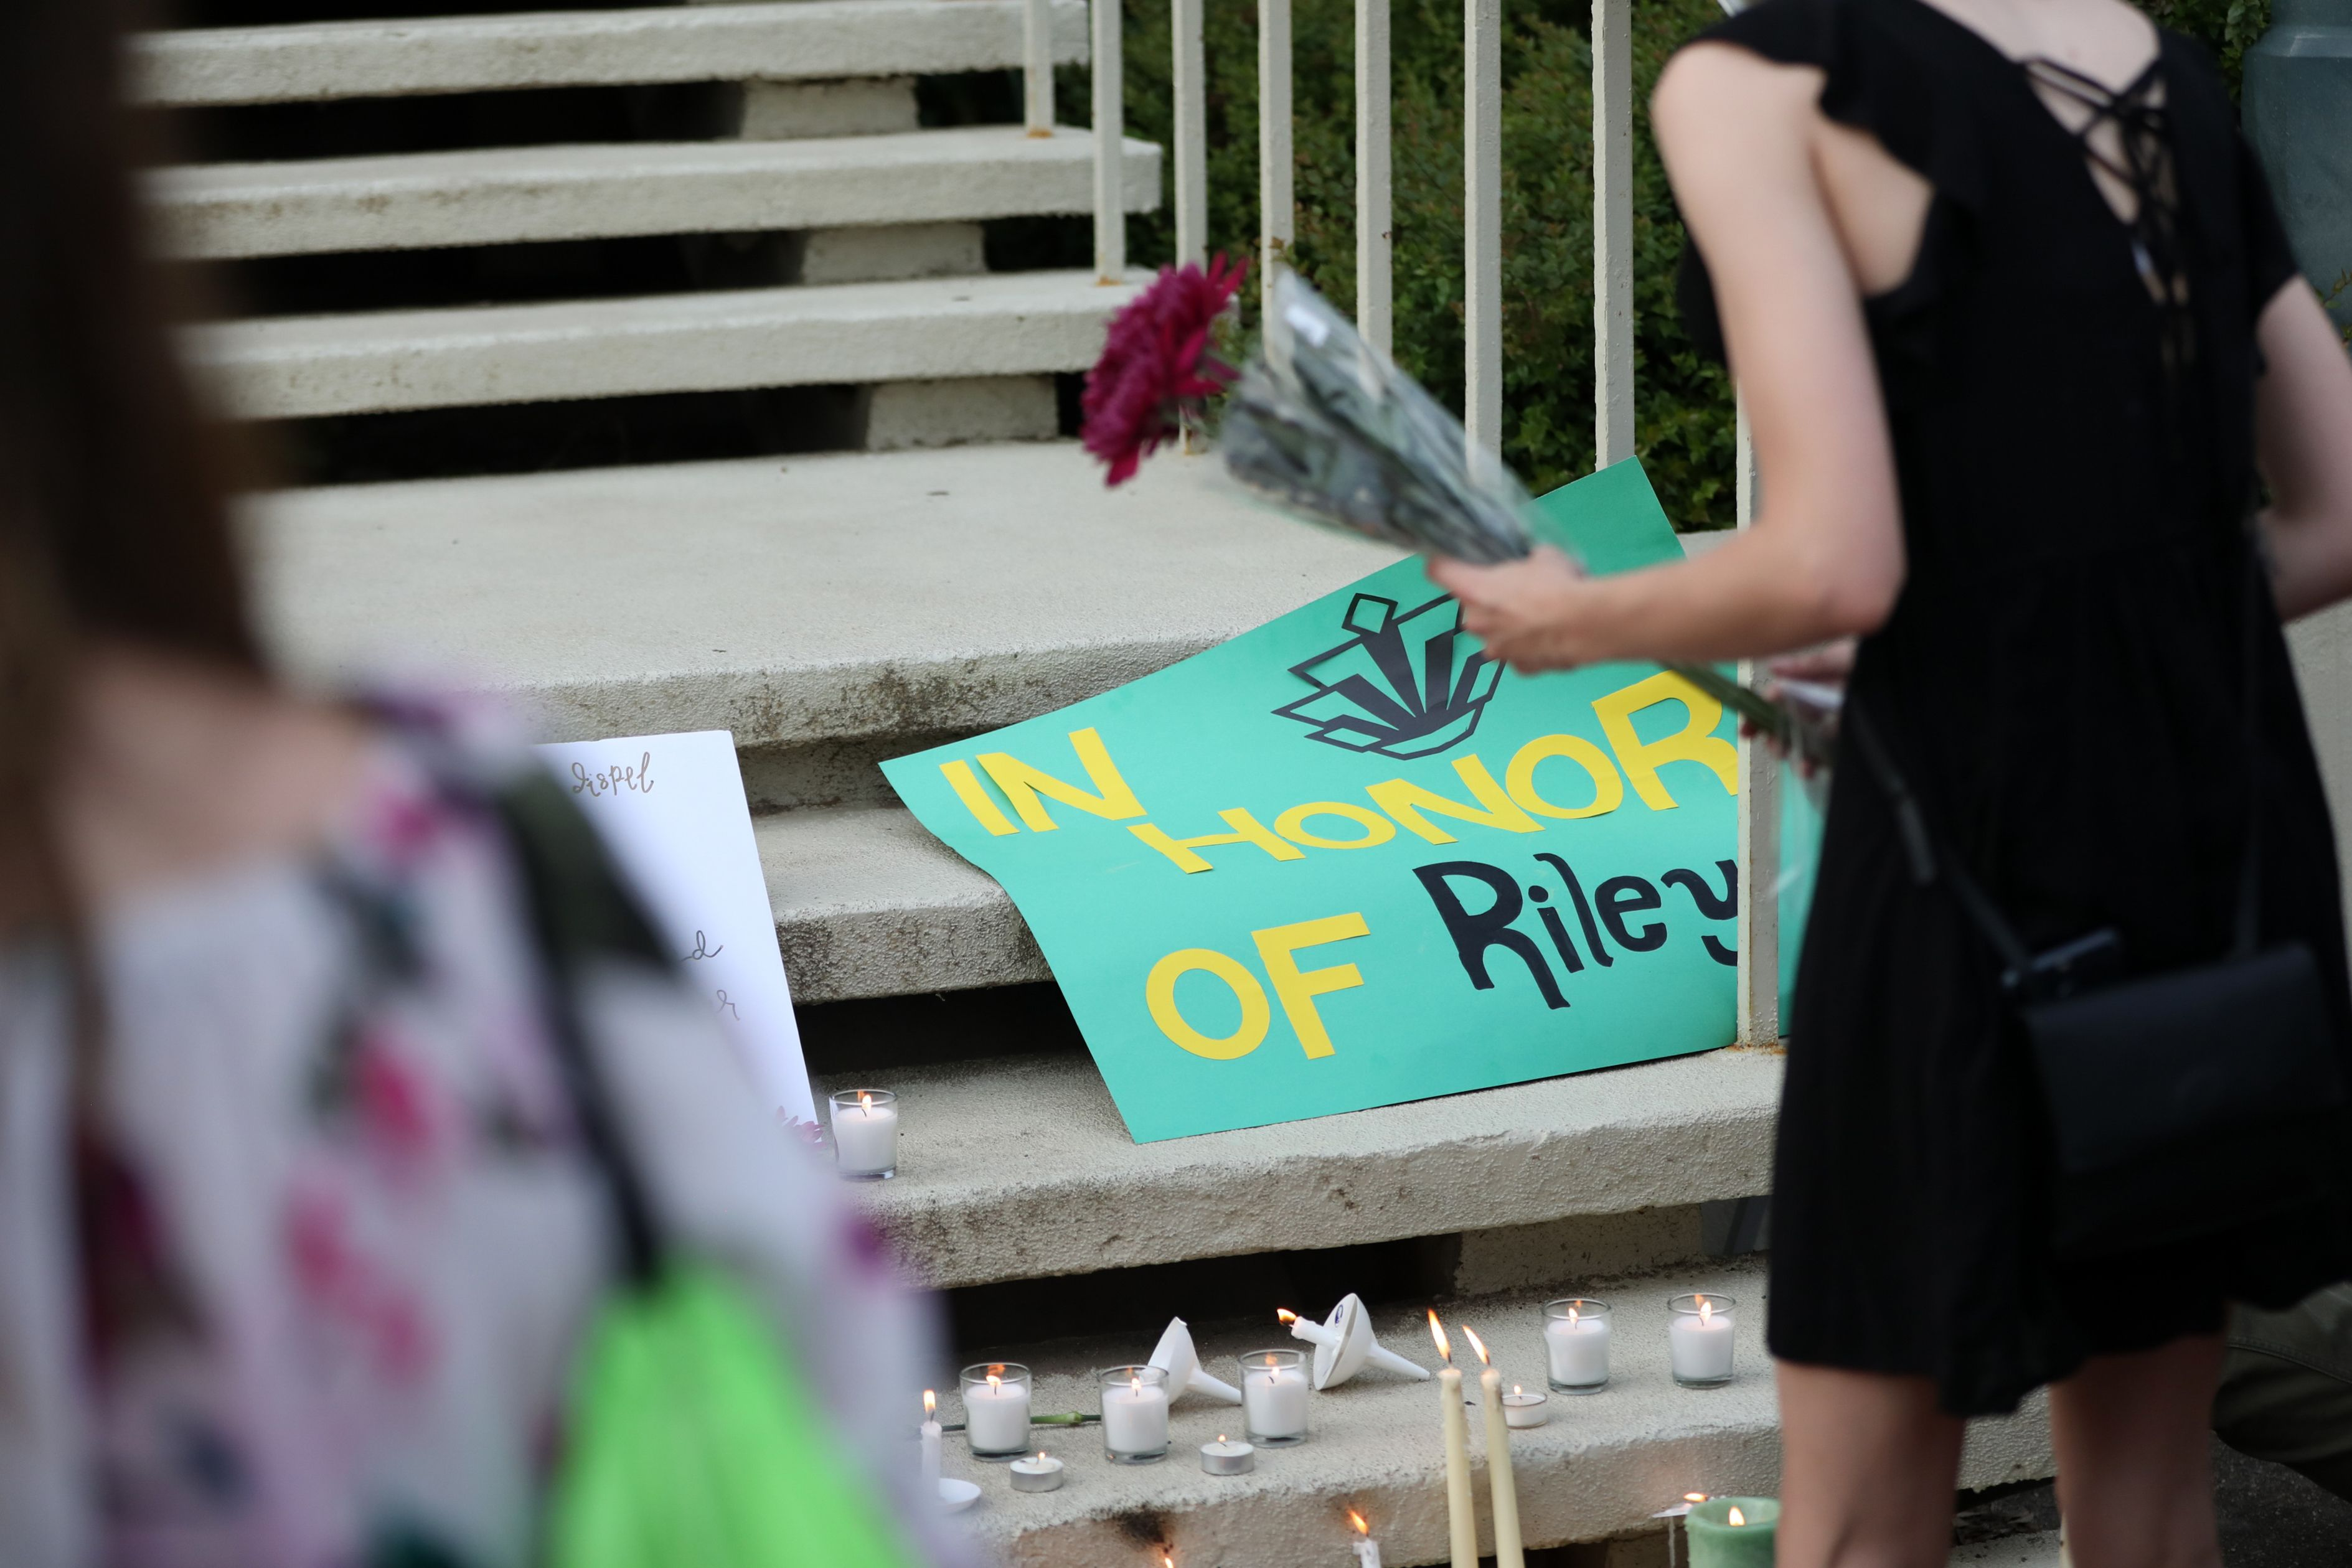 Students lay candles and flowers at the steps of Kennedy Hall to honor the victims of a shooting the day earlier at the University of North Carolina Charlotte, in Charlotte, North Carolina on May 1, 2019.